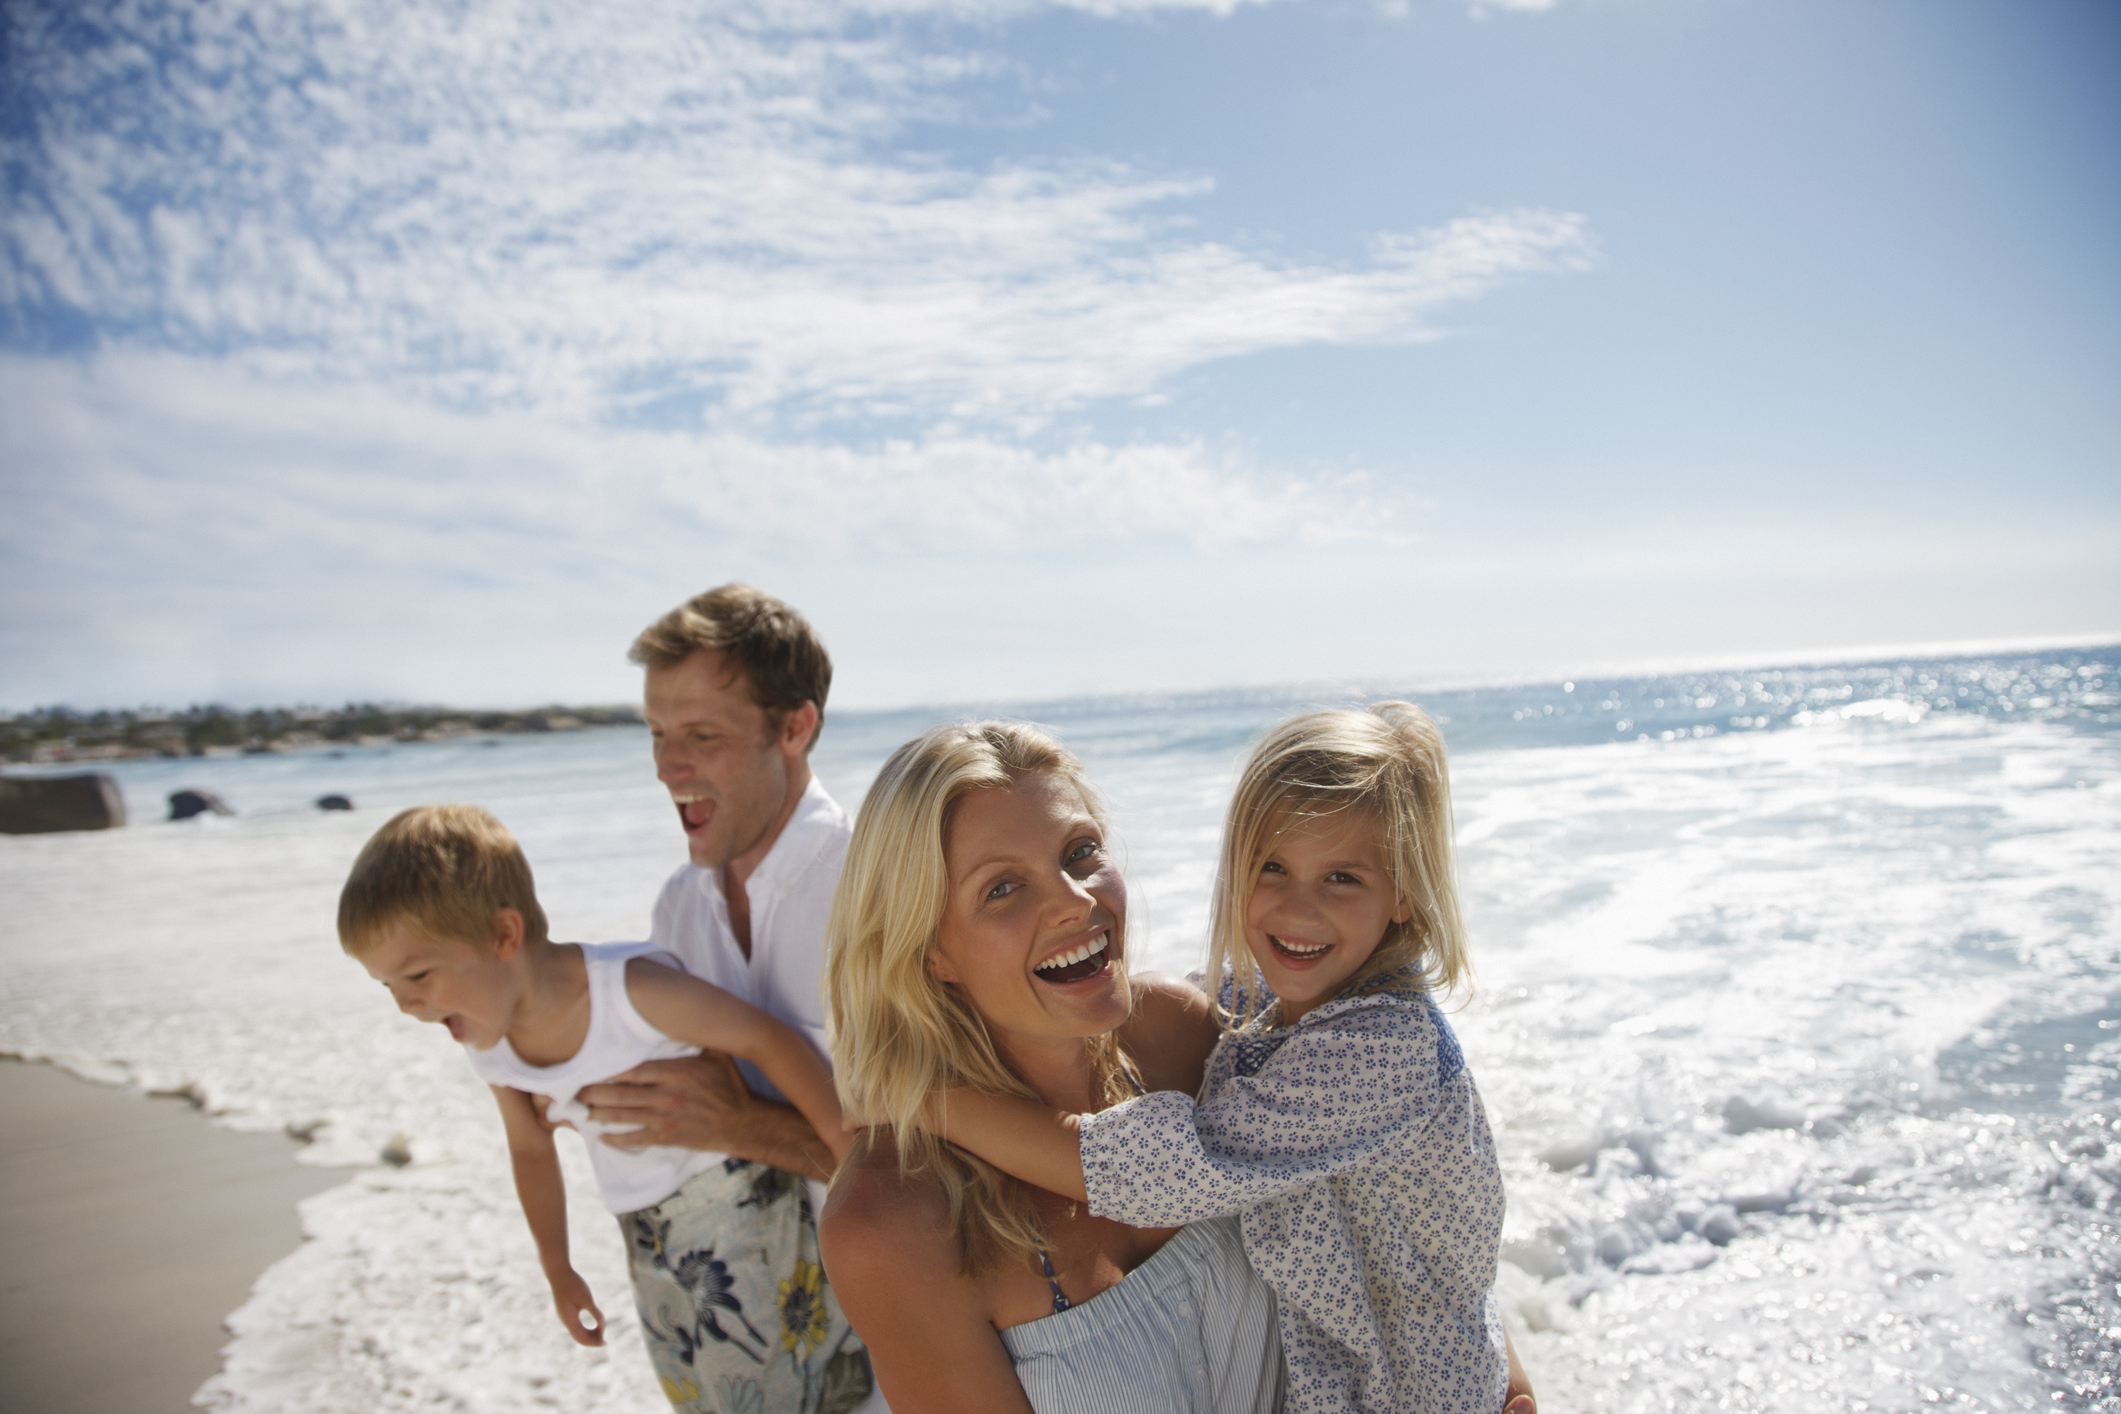 Man, woman, young boy, and young girl at the beach